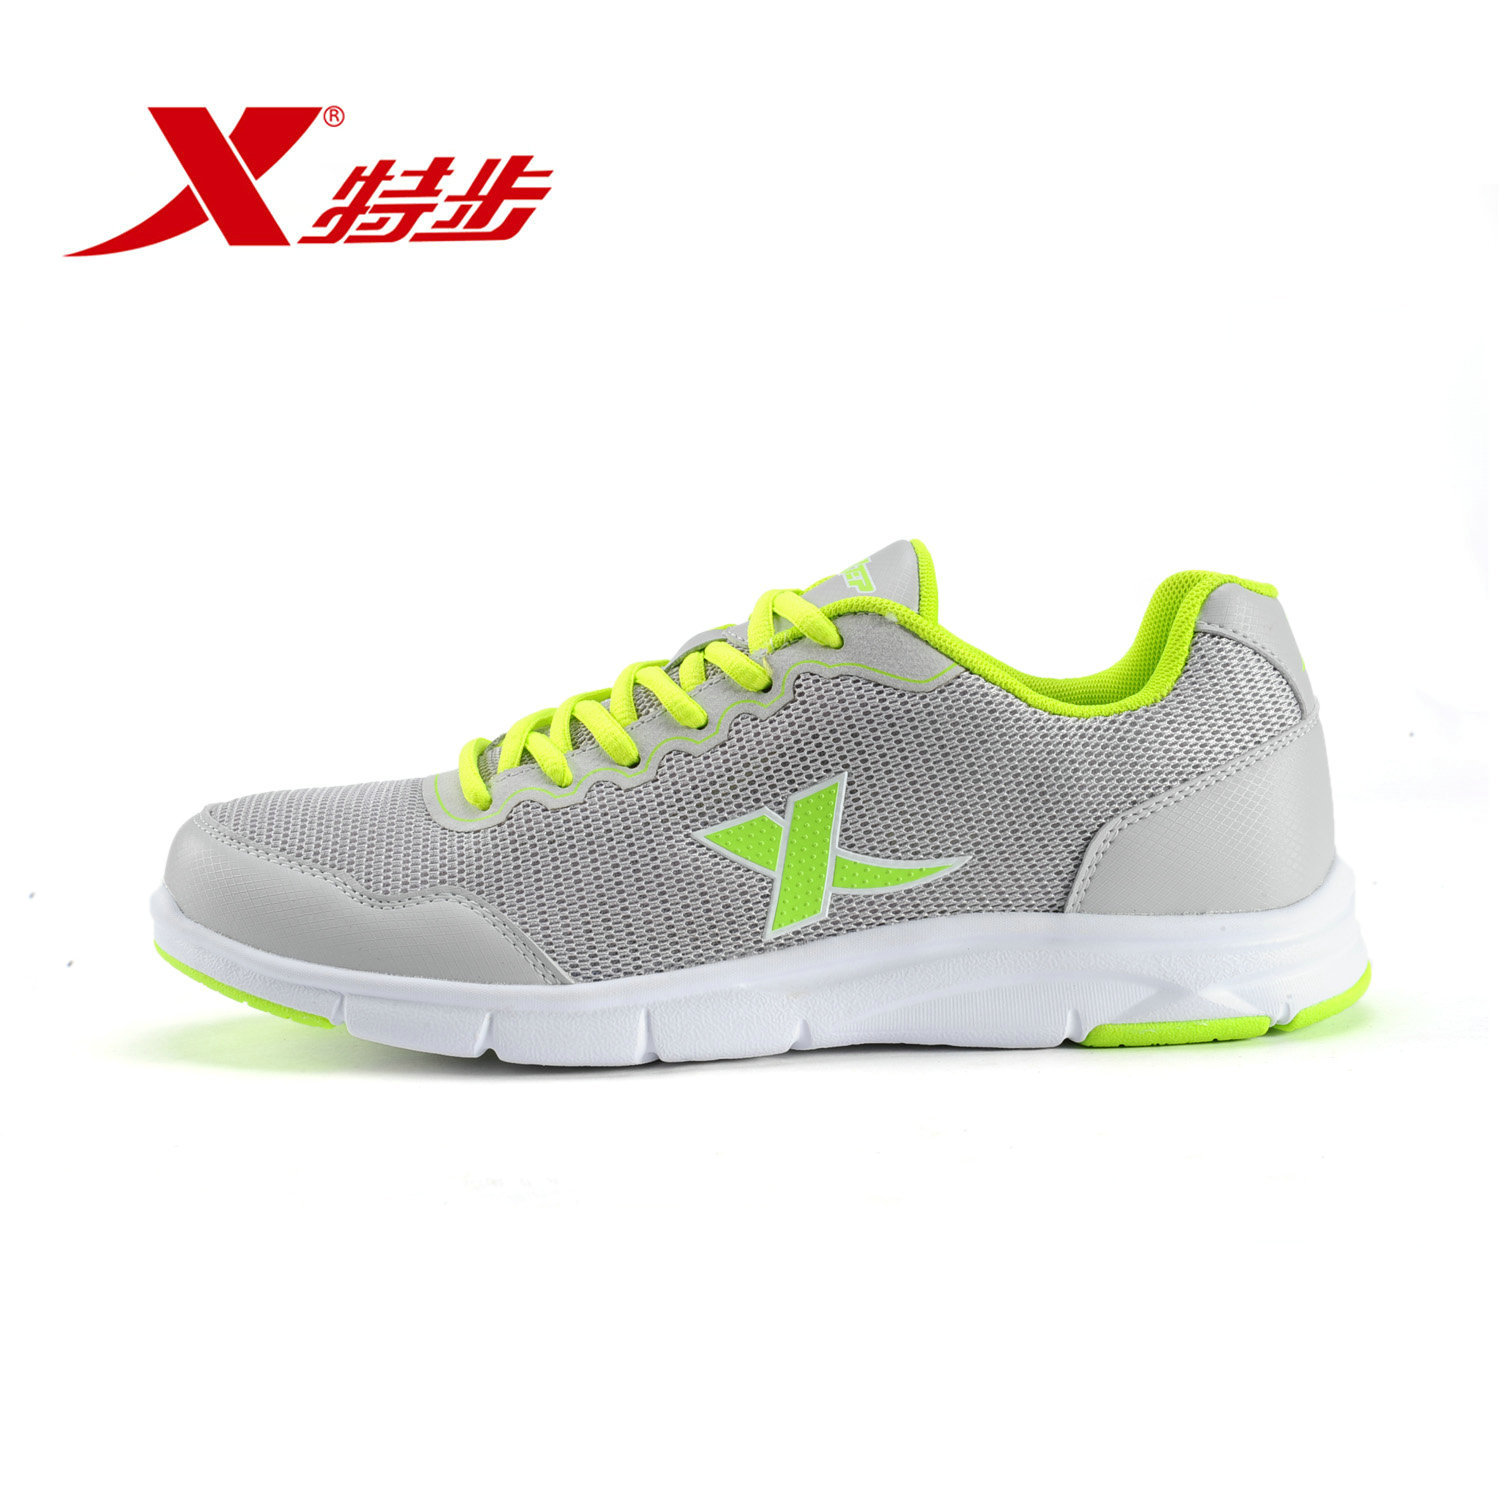 [Official] xtep xtep genuine new spring and summer mesh running shoes men lightweight breathable casual sports shoes running shoes